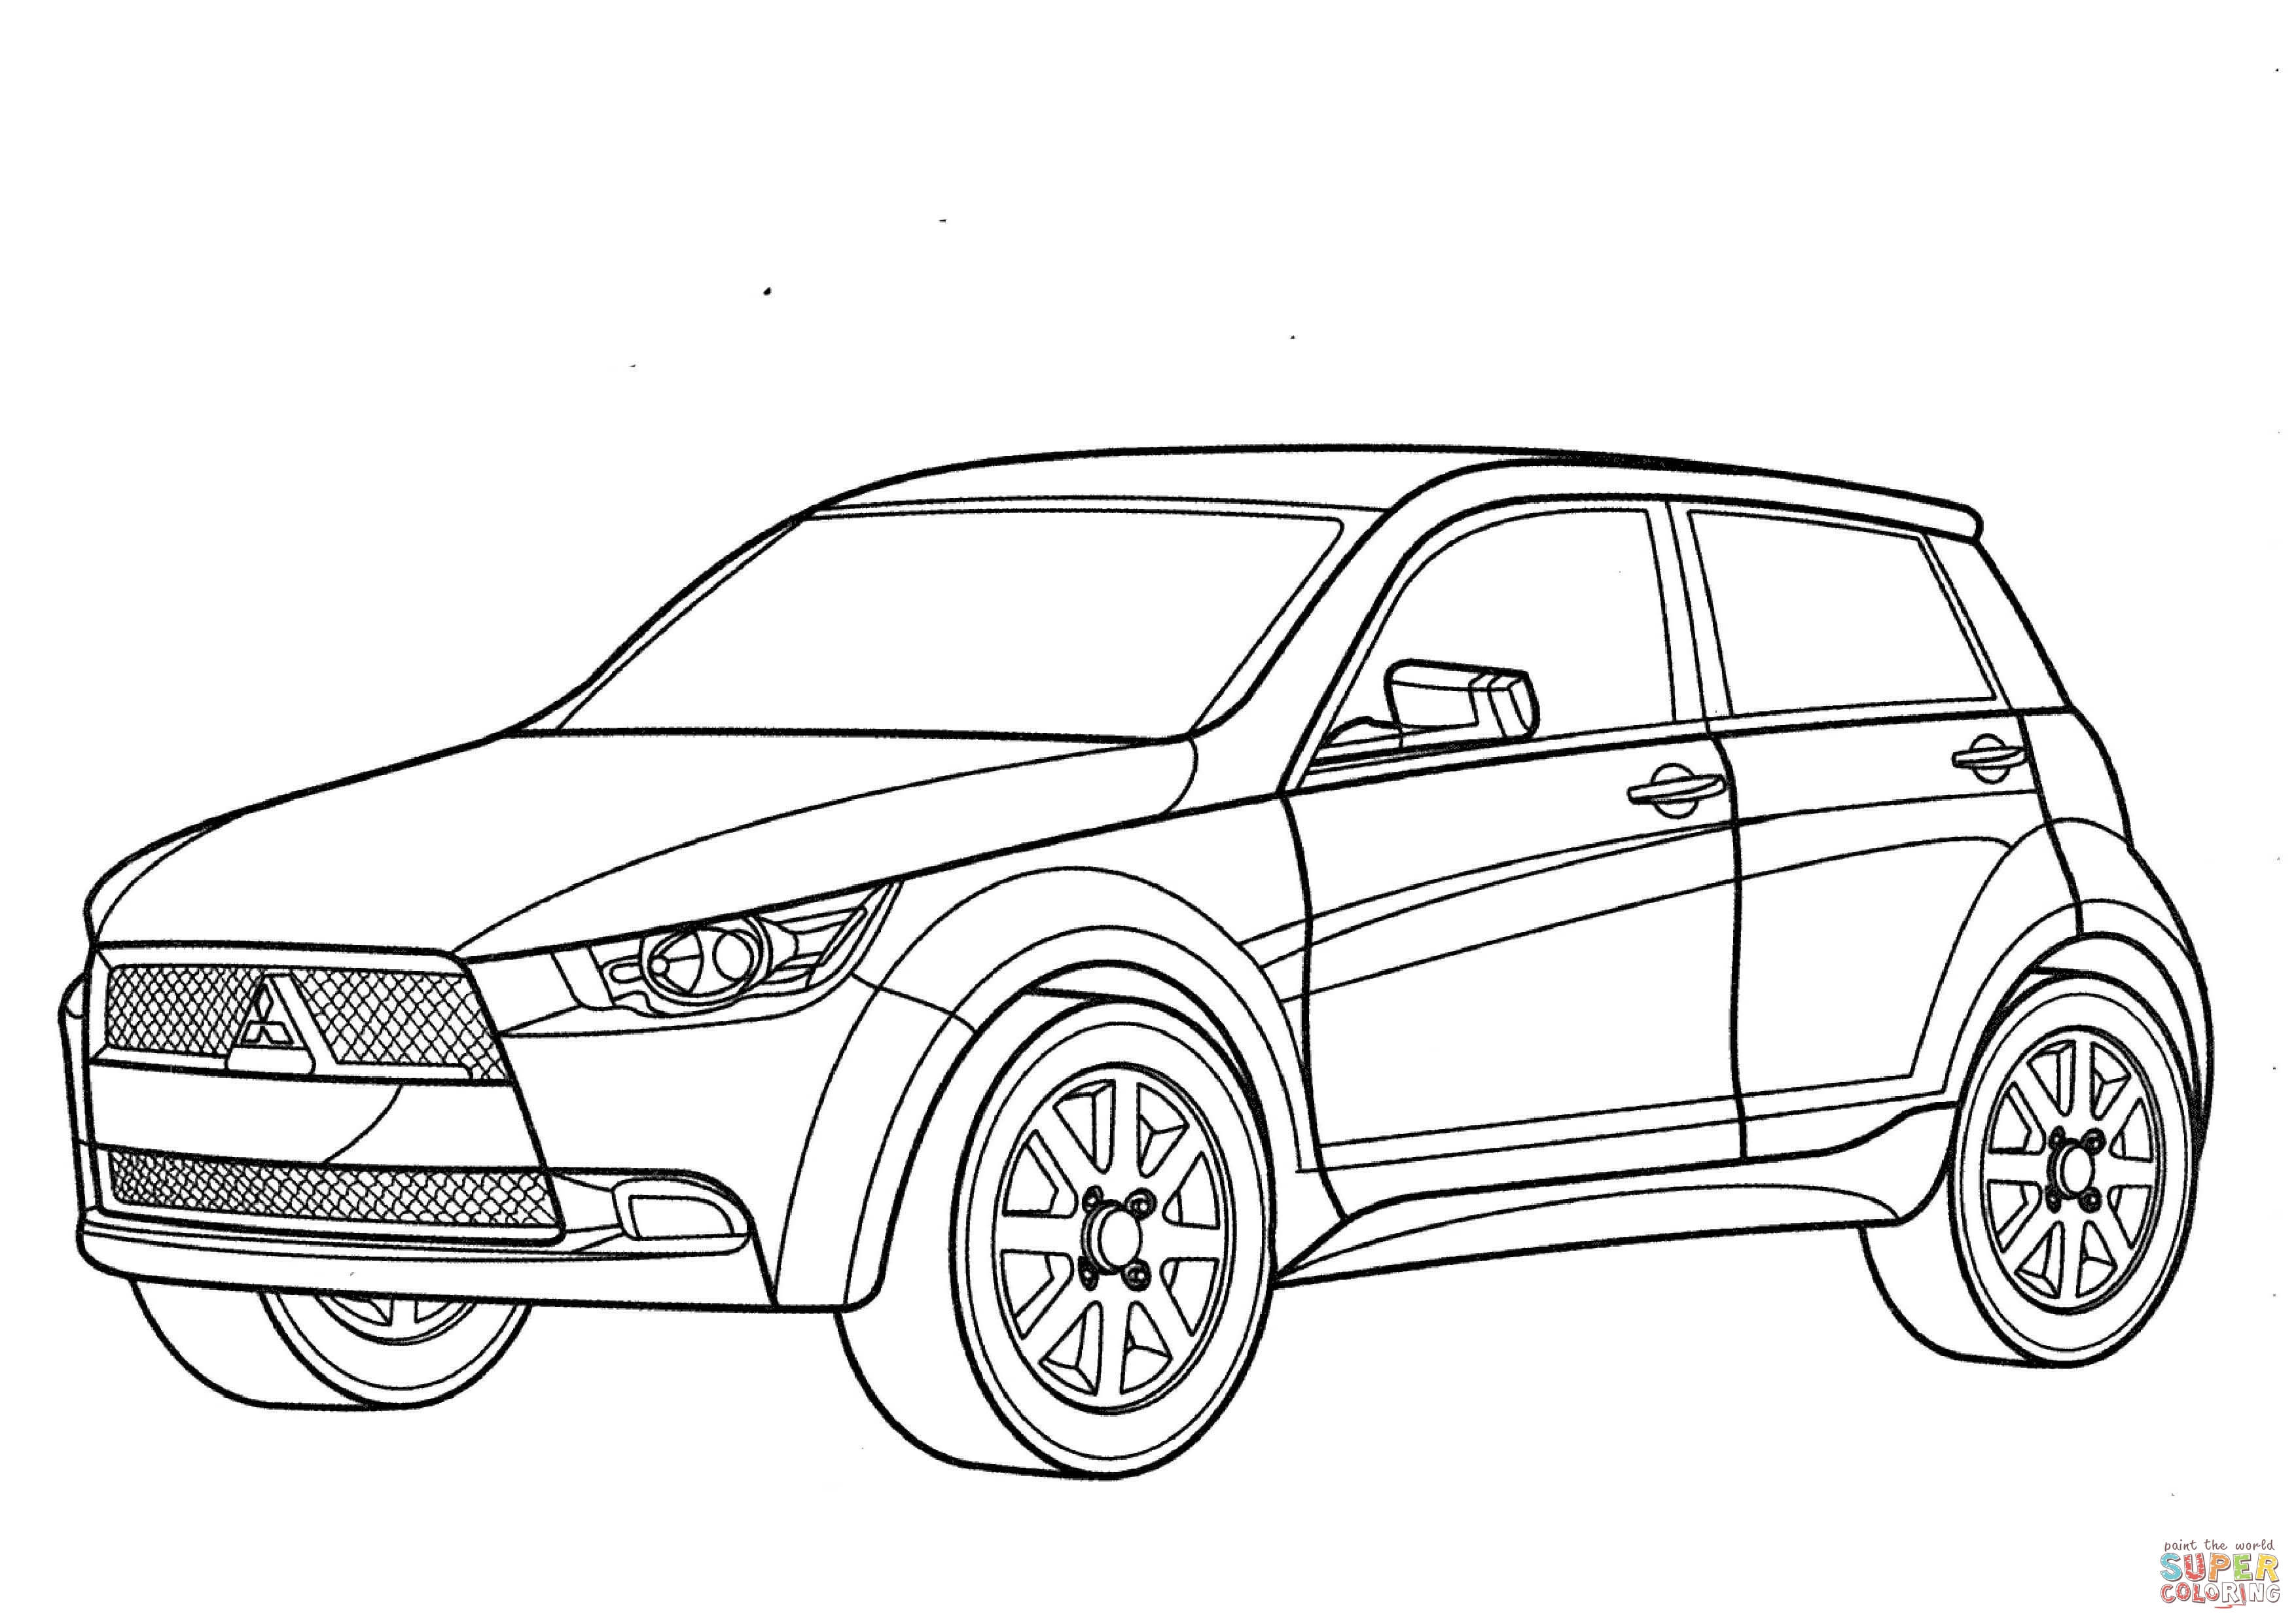 Mitsubishi Eclipse Drawing At Getdrawings